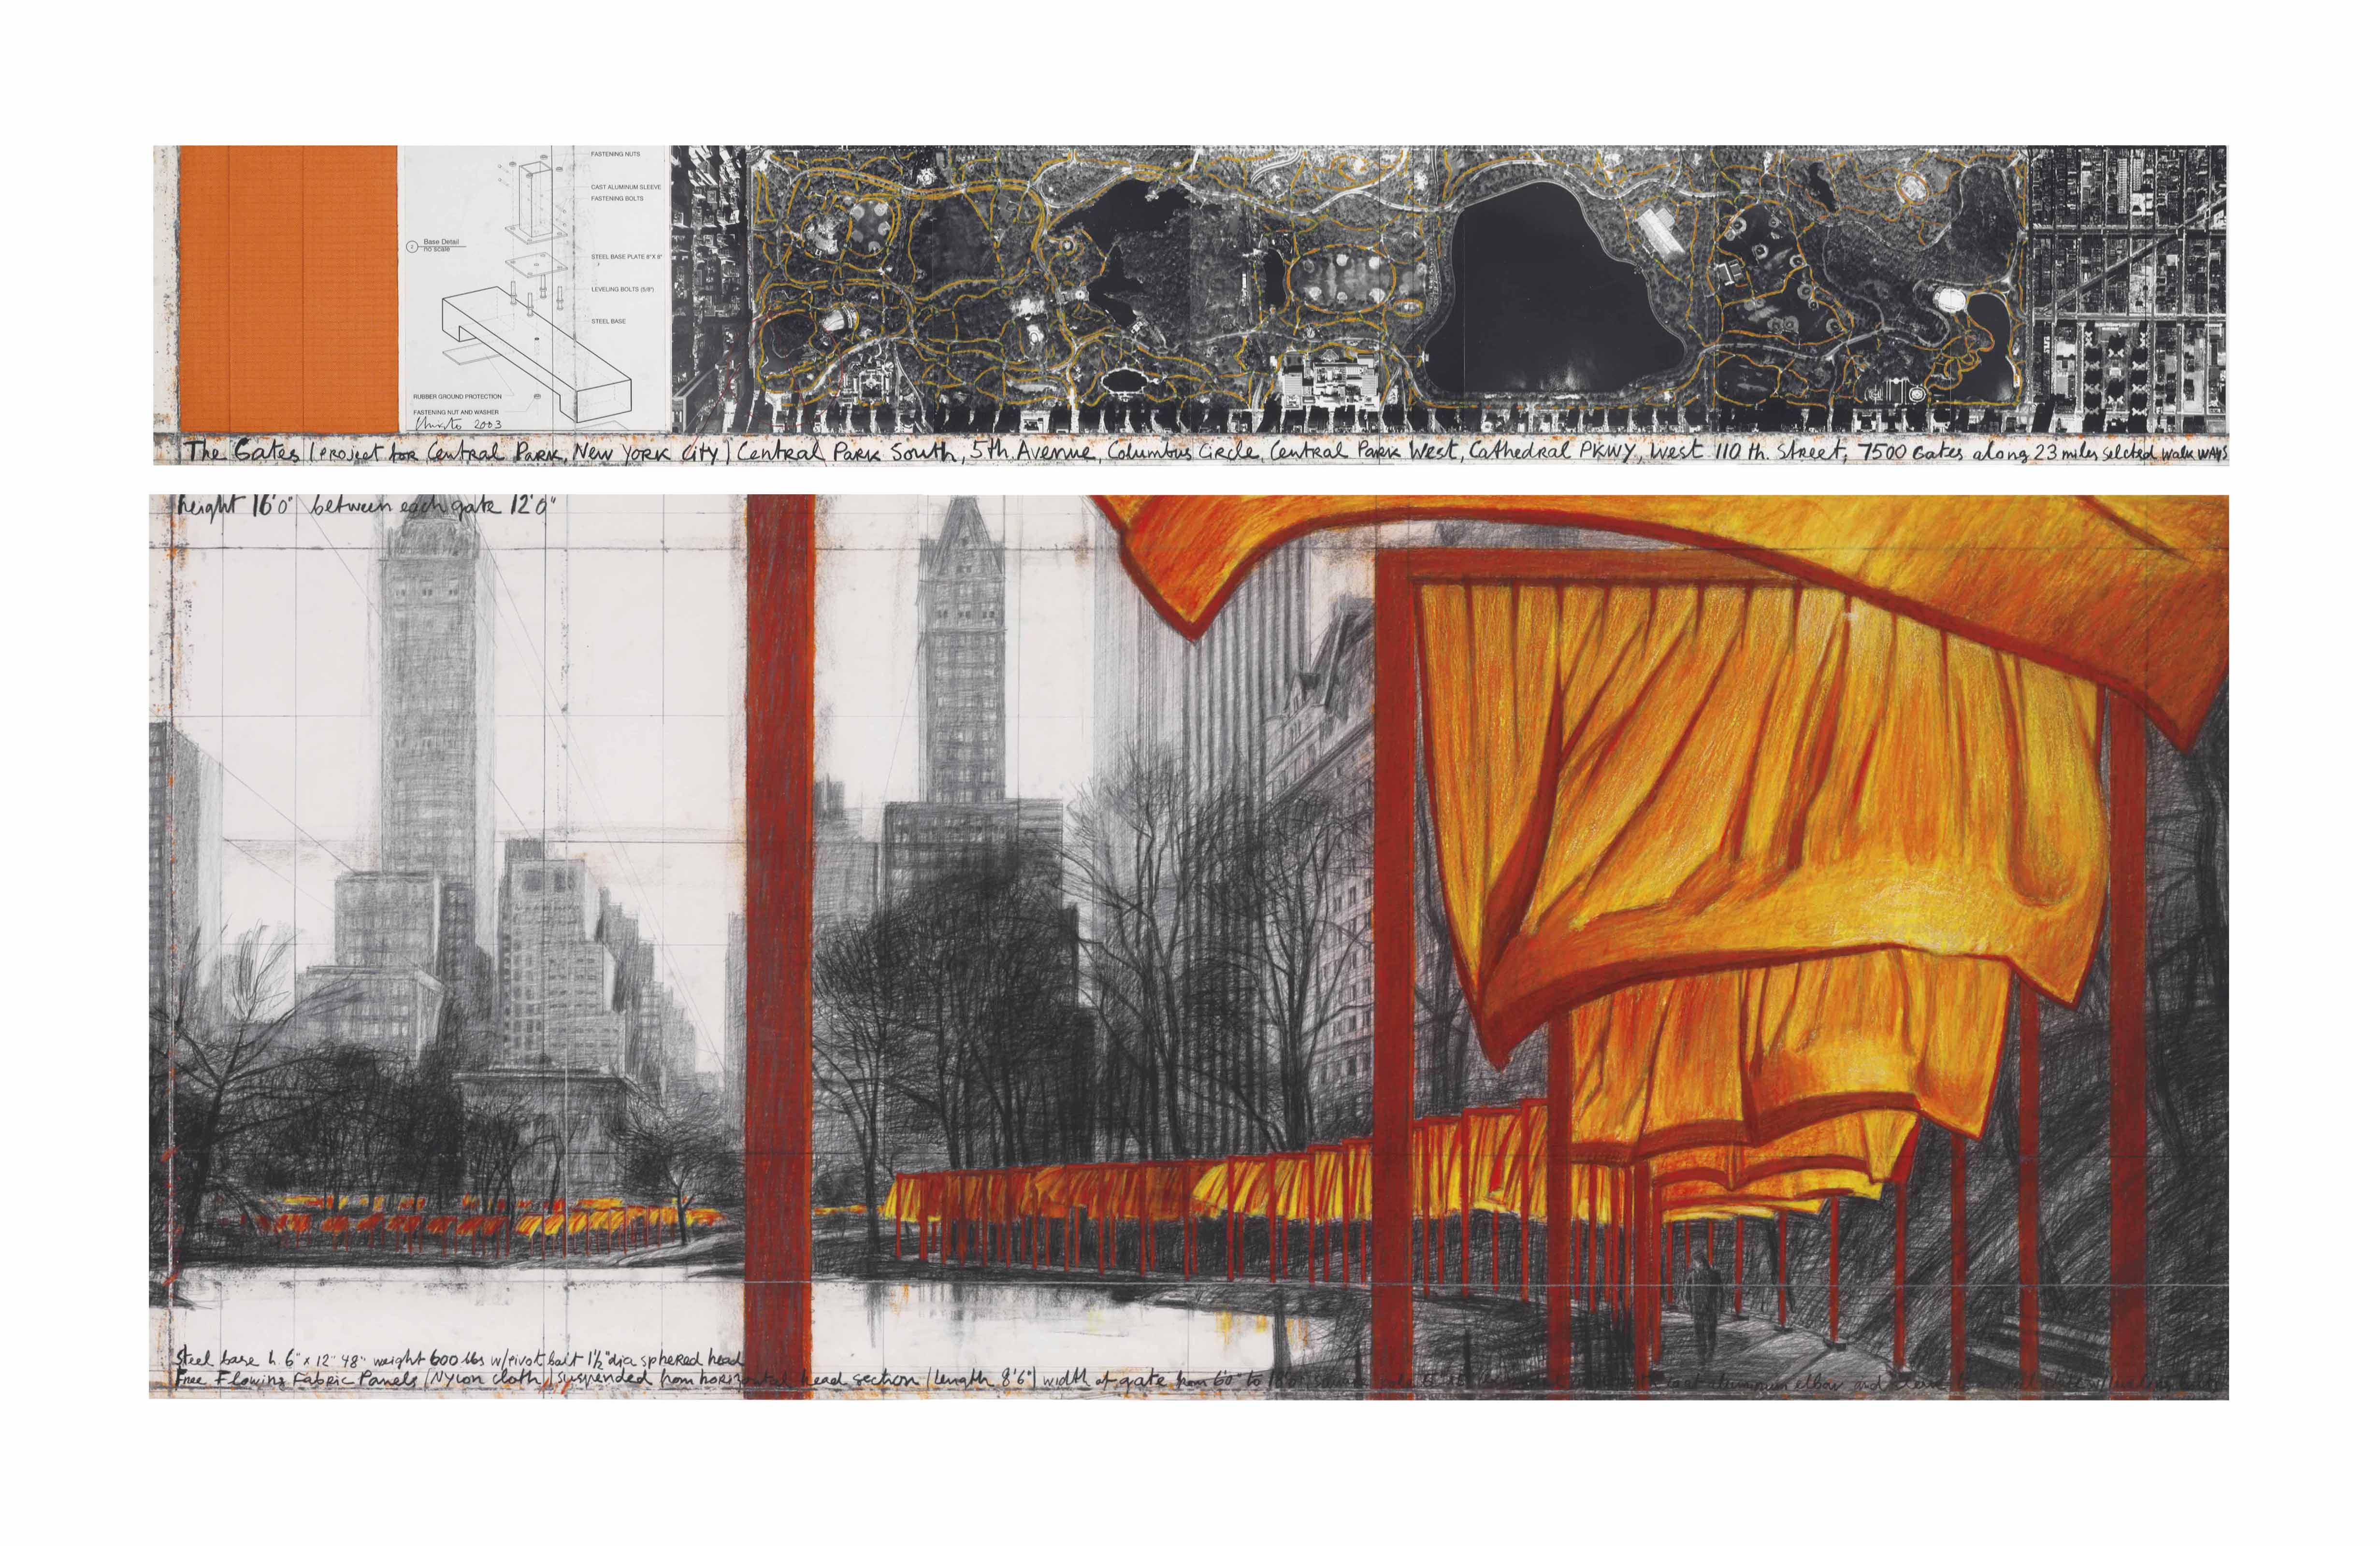 The Gates (Project for Central Park, New York City)